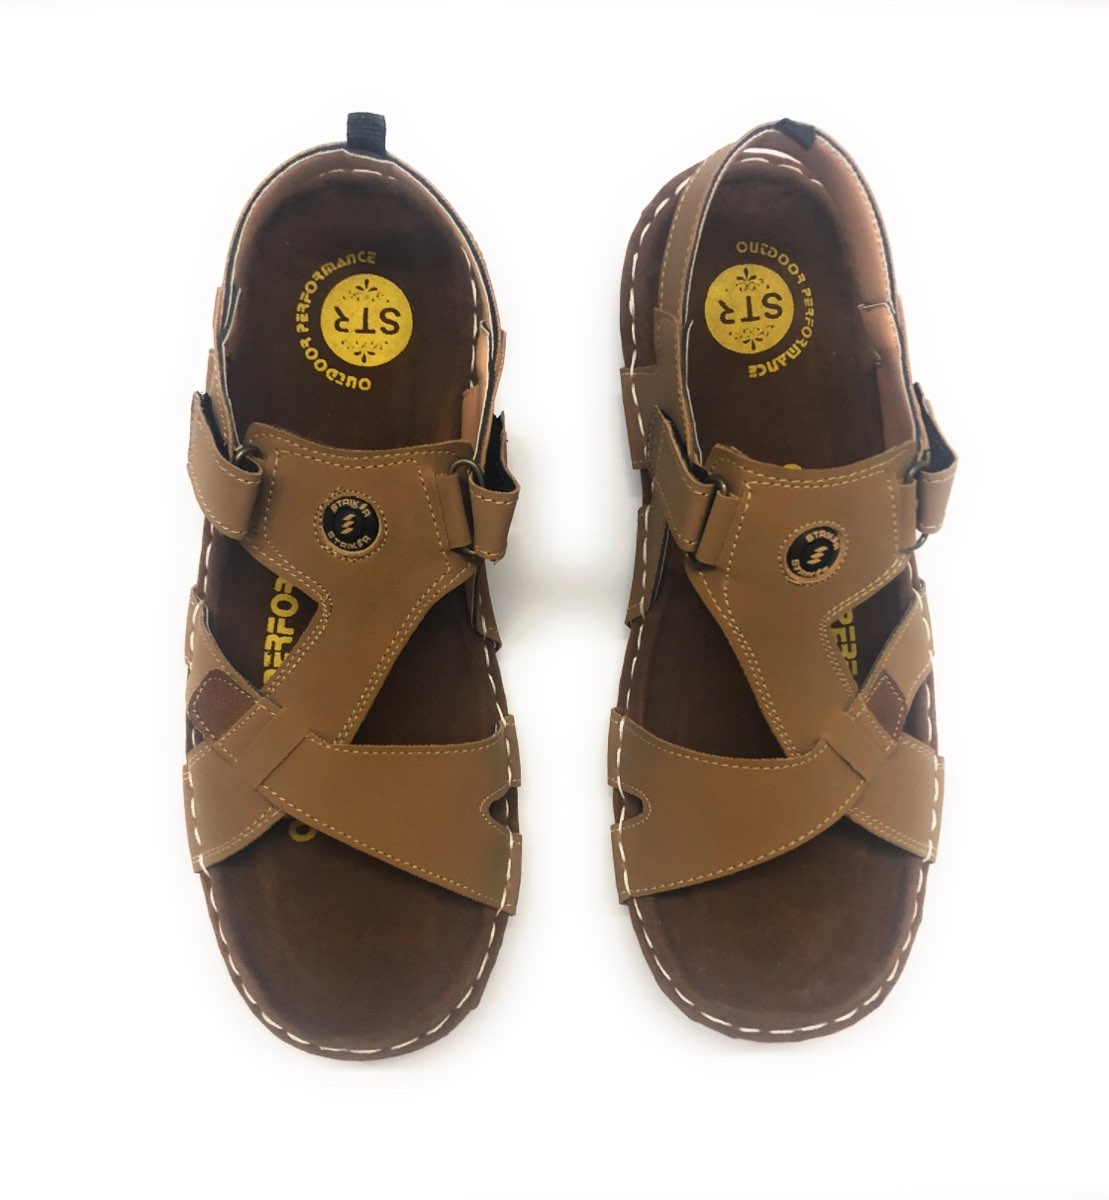 as8creation Striker Mens Sandals(6002 Tan)